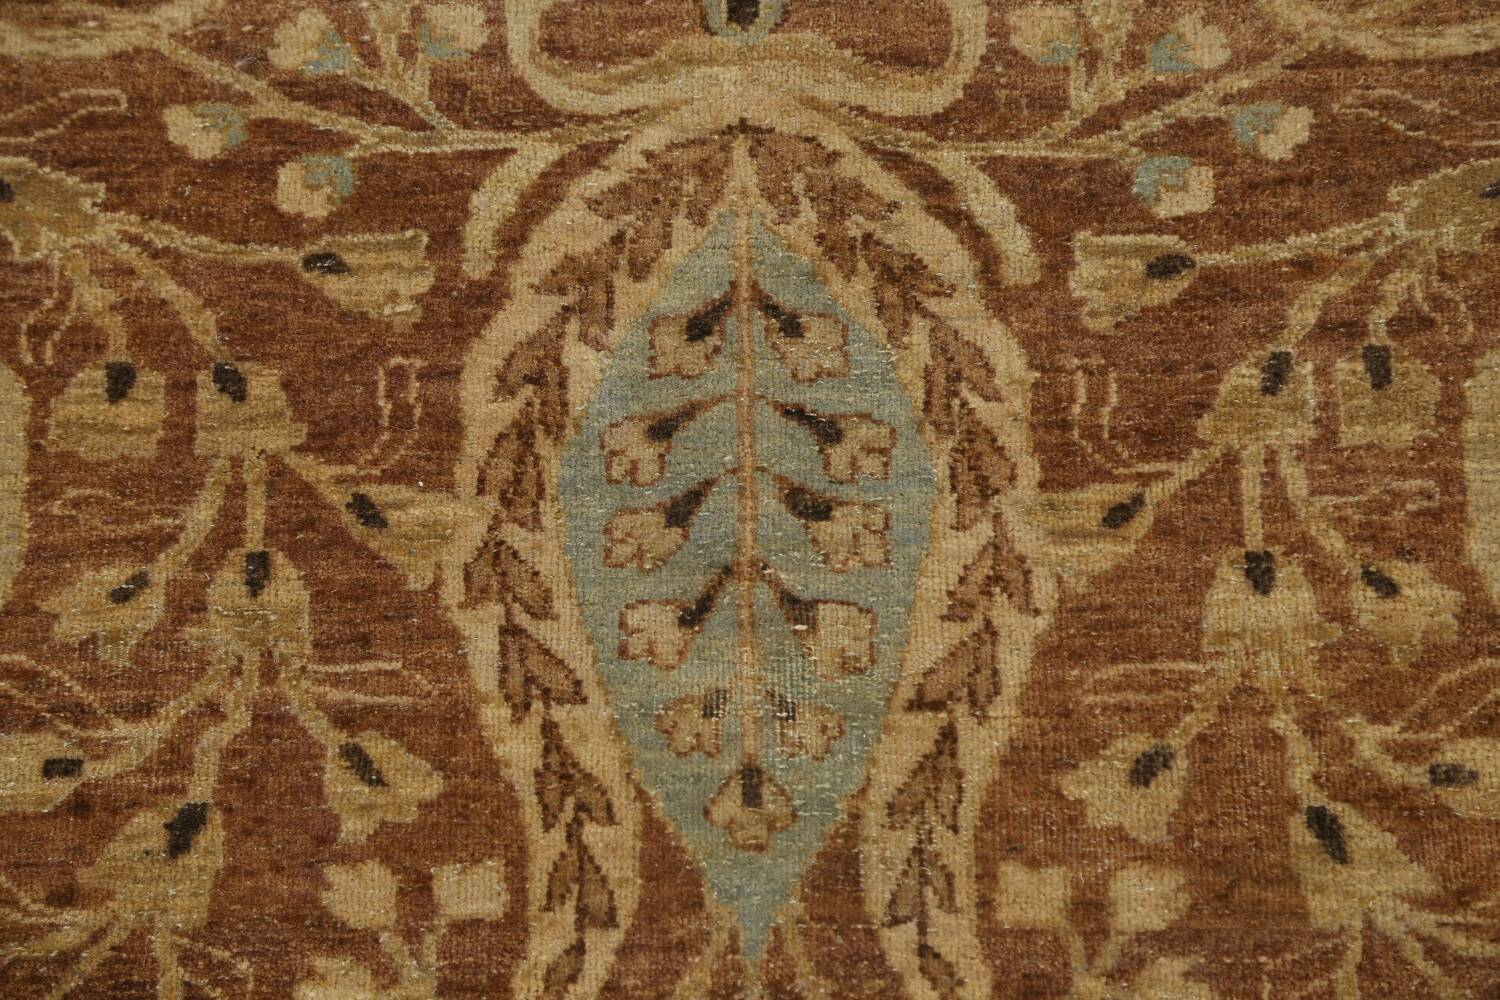 100% Vegetable Dye Floral Kashan Oriental Area Rug 9x12 image 11